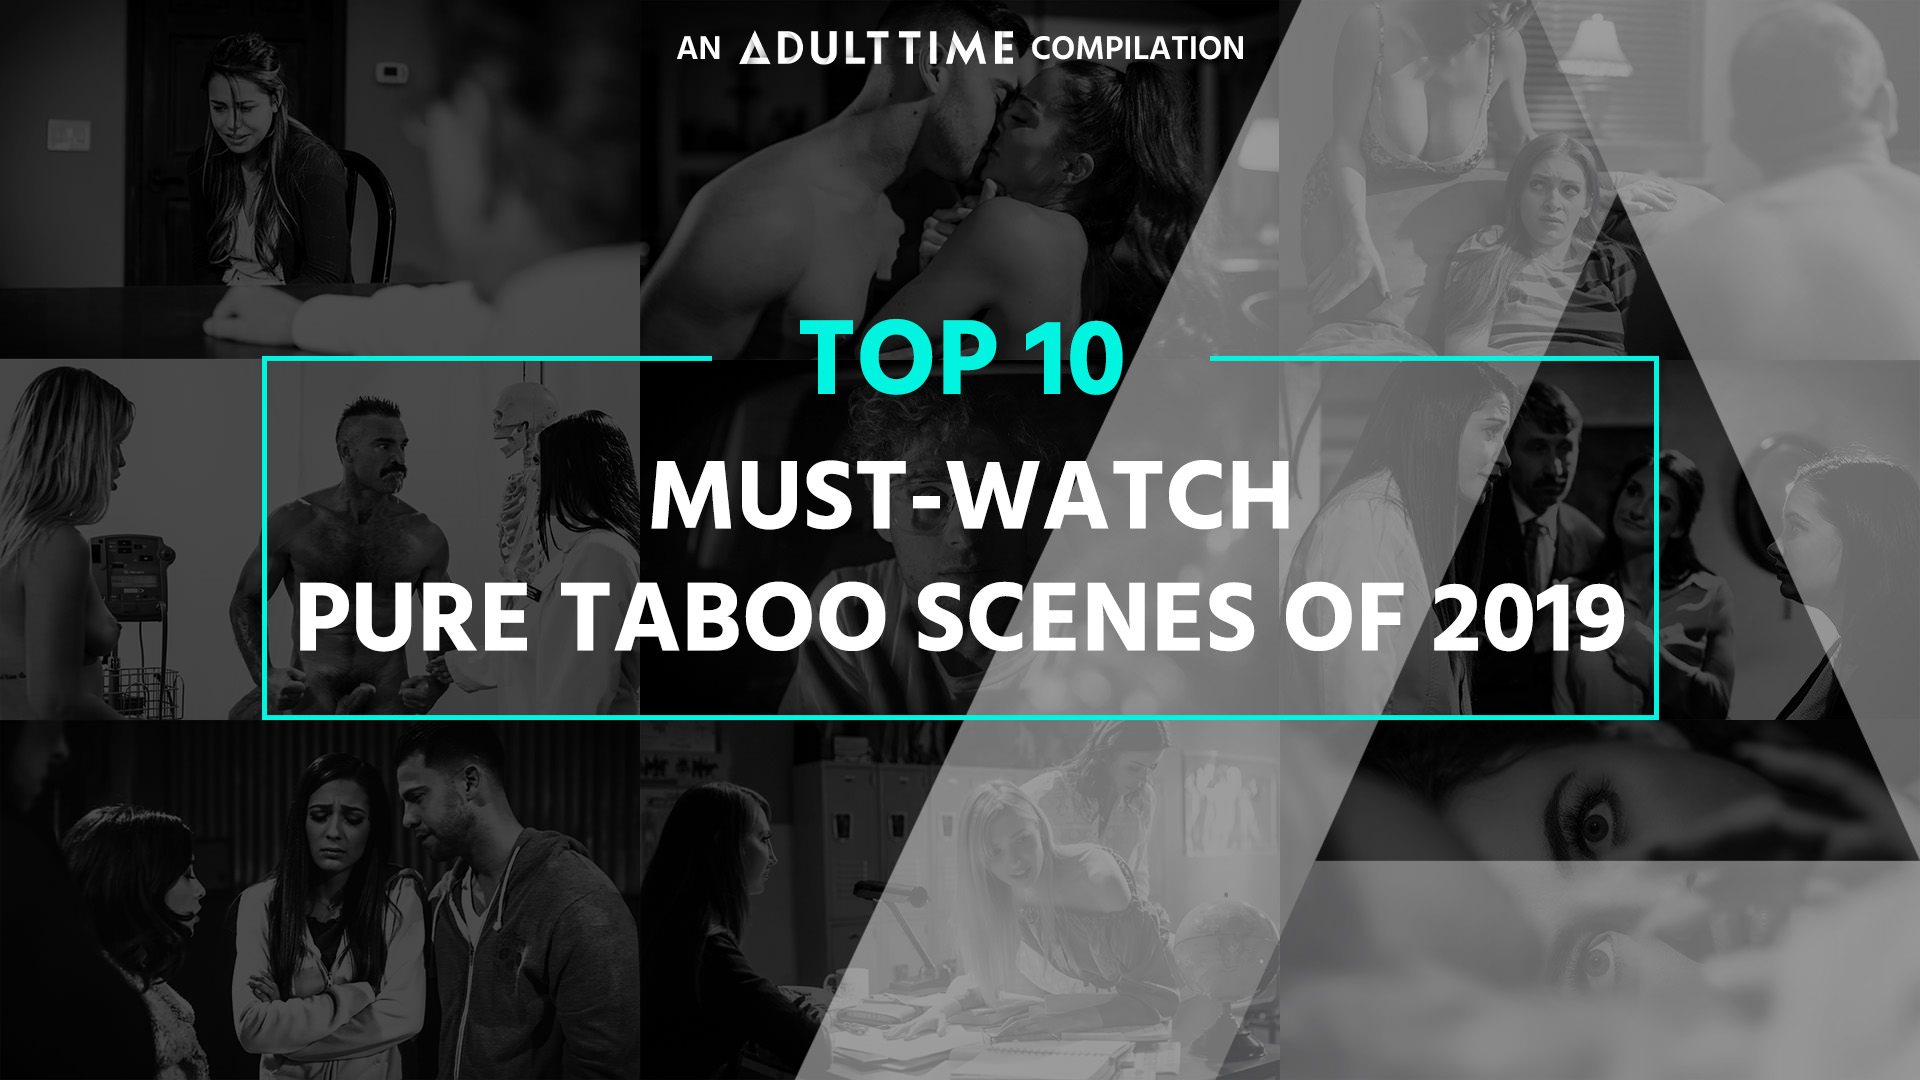 Top 10 - Must-Watch Pure Taboo Scenes of 2019 - Dick Chibbles & Tommy Pistol & Jaye Summers & Abigail Mac & Kendra James & Cherie DeVille & Alexis Fawx & Gia Paige & Angela White & Reagan Foxx & Whitney Wright & Maya Kendrick & Alina Lopez & Jane Wilde & Michael Vegas & Isiah Maxwell & Seth Gamble & Steve Holmes & Charles Dera & Jake Adams & Mr. Pete & Dee Williams & Silvia Saige & Avi Love & Mackenzie Moss 1